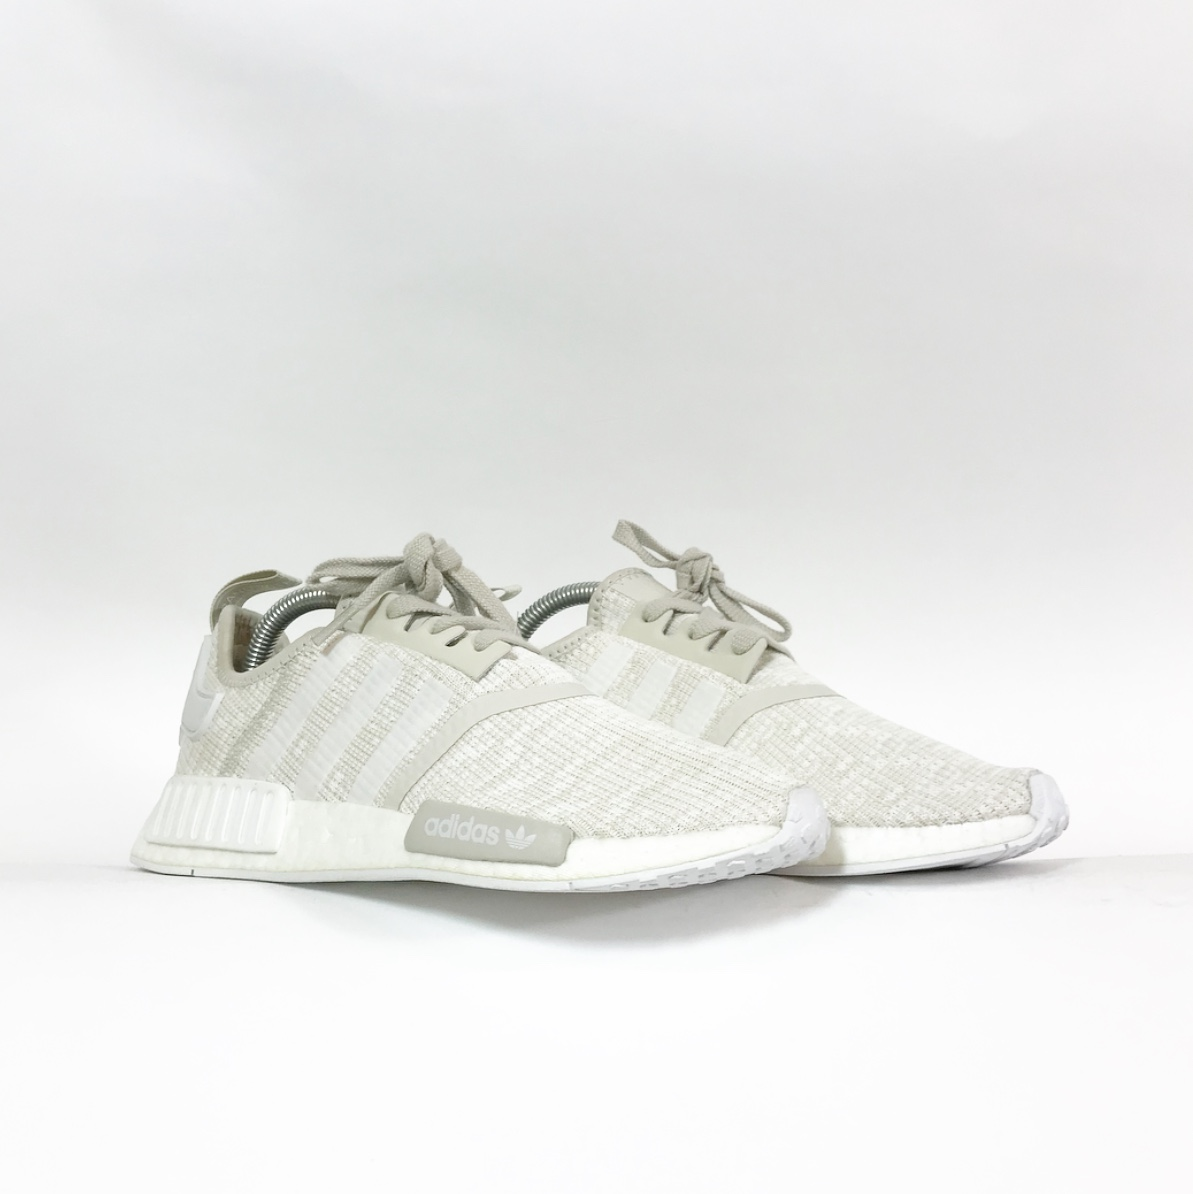 Adidas NMD R2 Brand new!! They run big, so they fit a 7